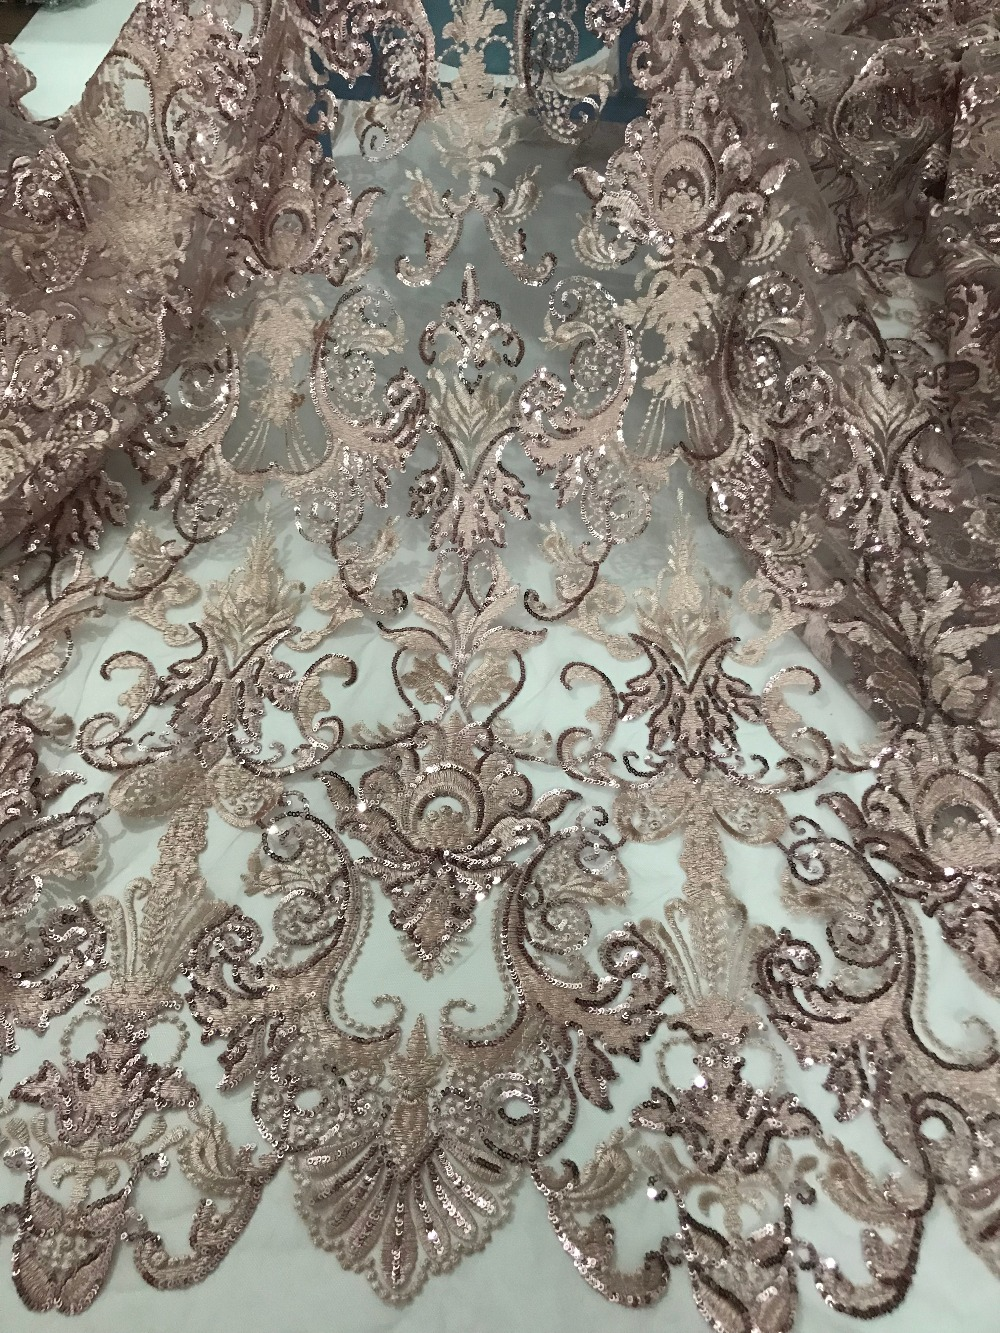 fast shipping 5 yards embroidery tulle mesh lace fabric SYJ 71518 with sequins for wedding dress